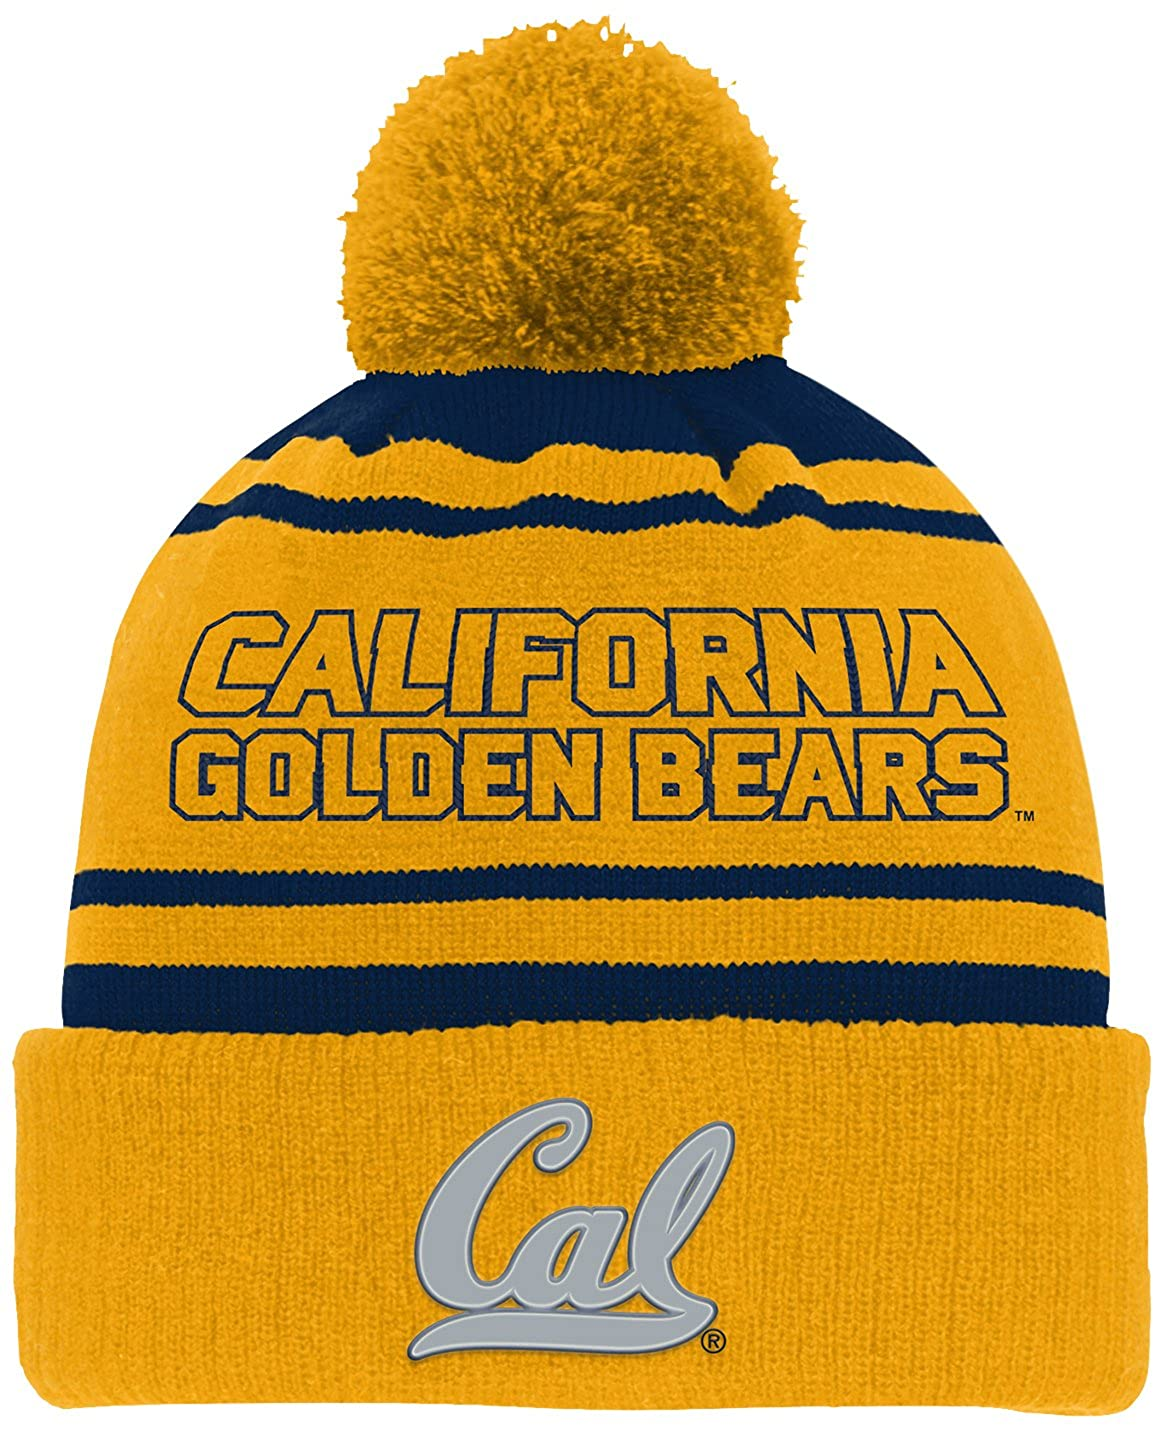 Youth One Size NCAA by Outerstuff NCAA California Golden Bears Youth Boys Reflective Cuff Knit Hat w// Pom Dark Navy